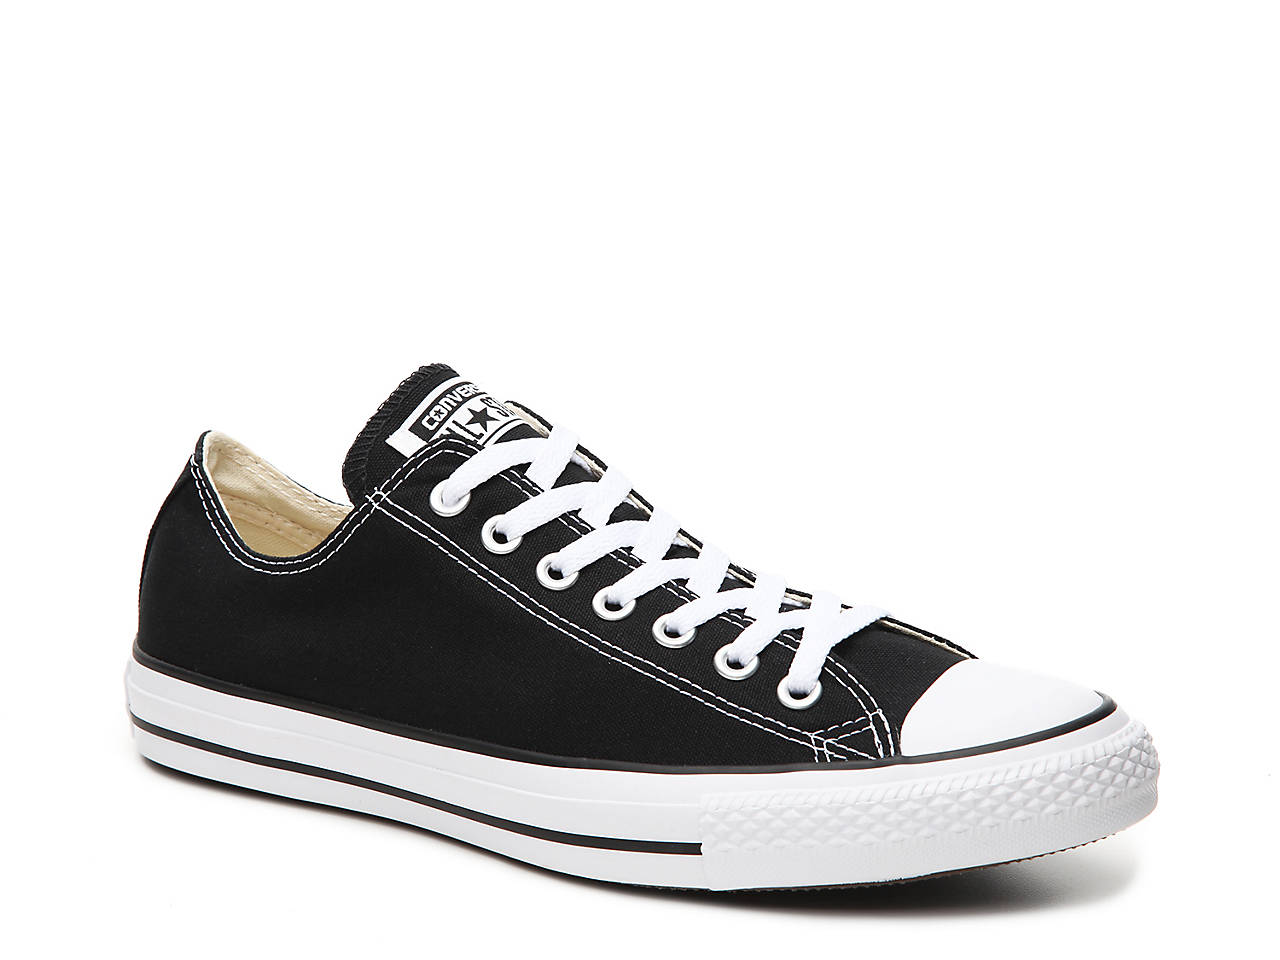 4827d3594f24 Converse Chuck Taylor All Star Sneaker - Men s Men s Shoes